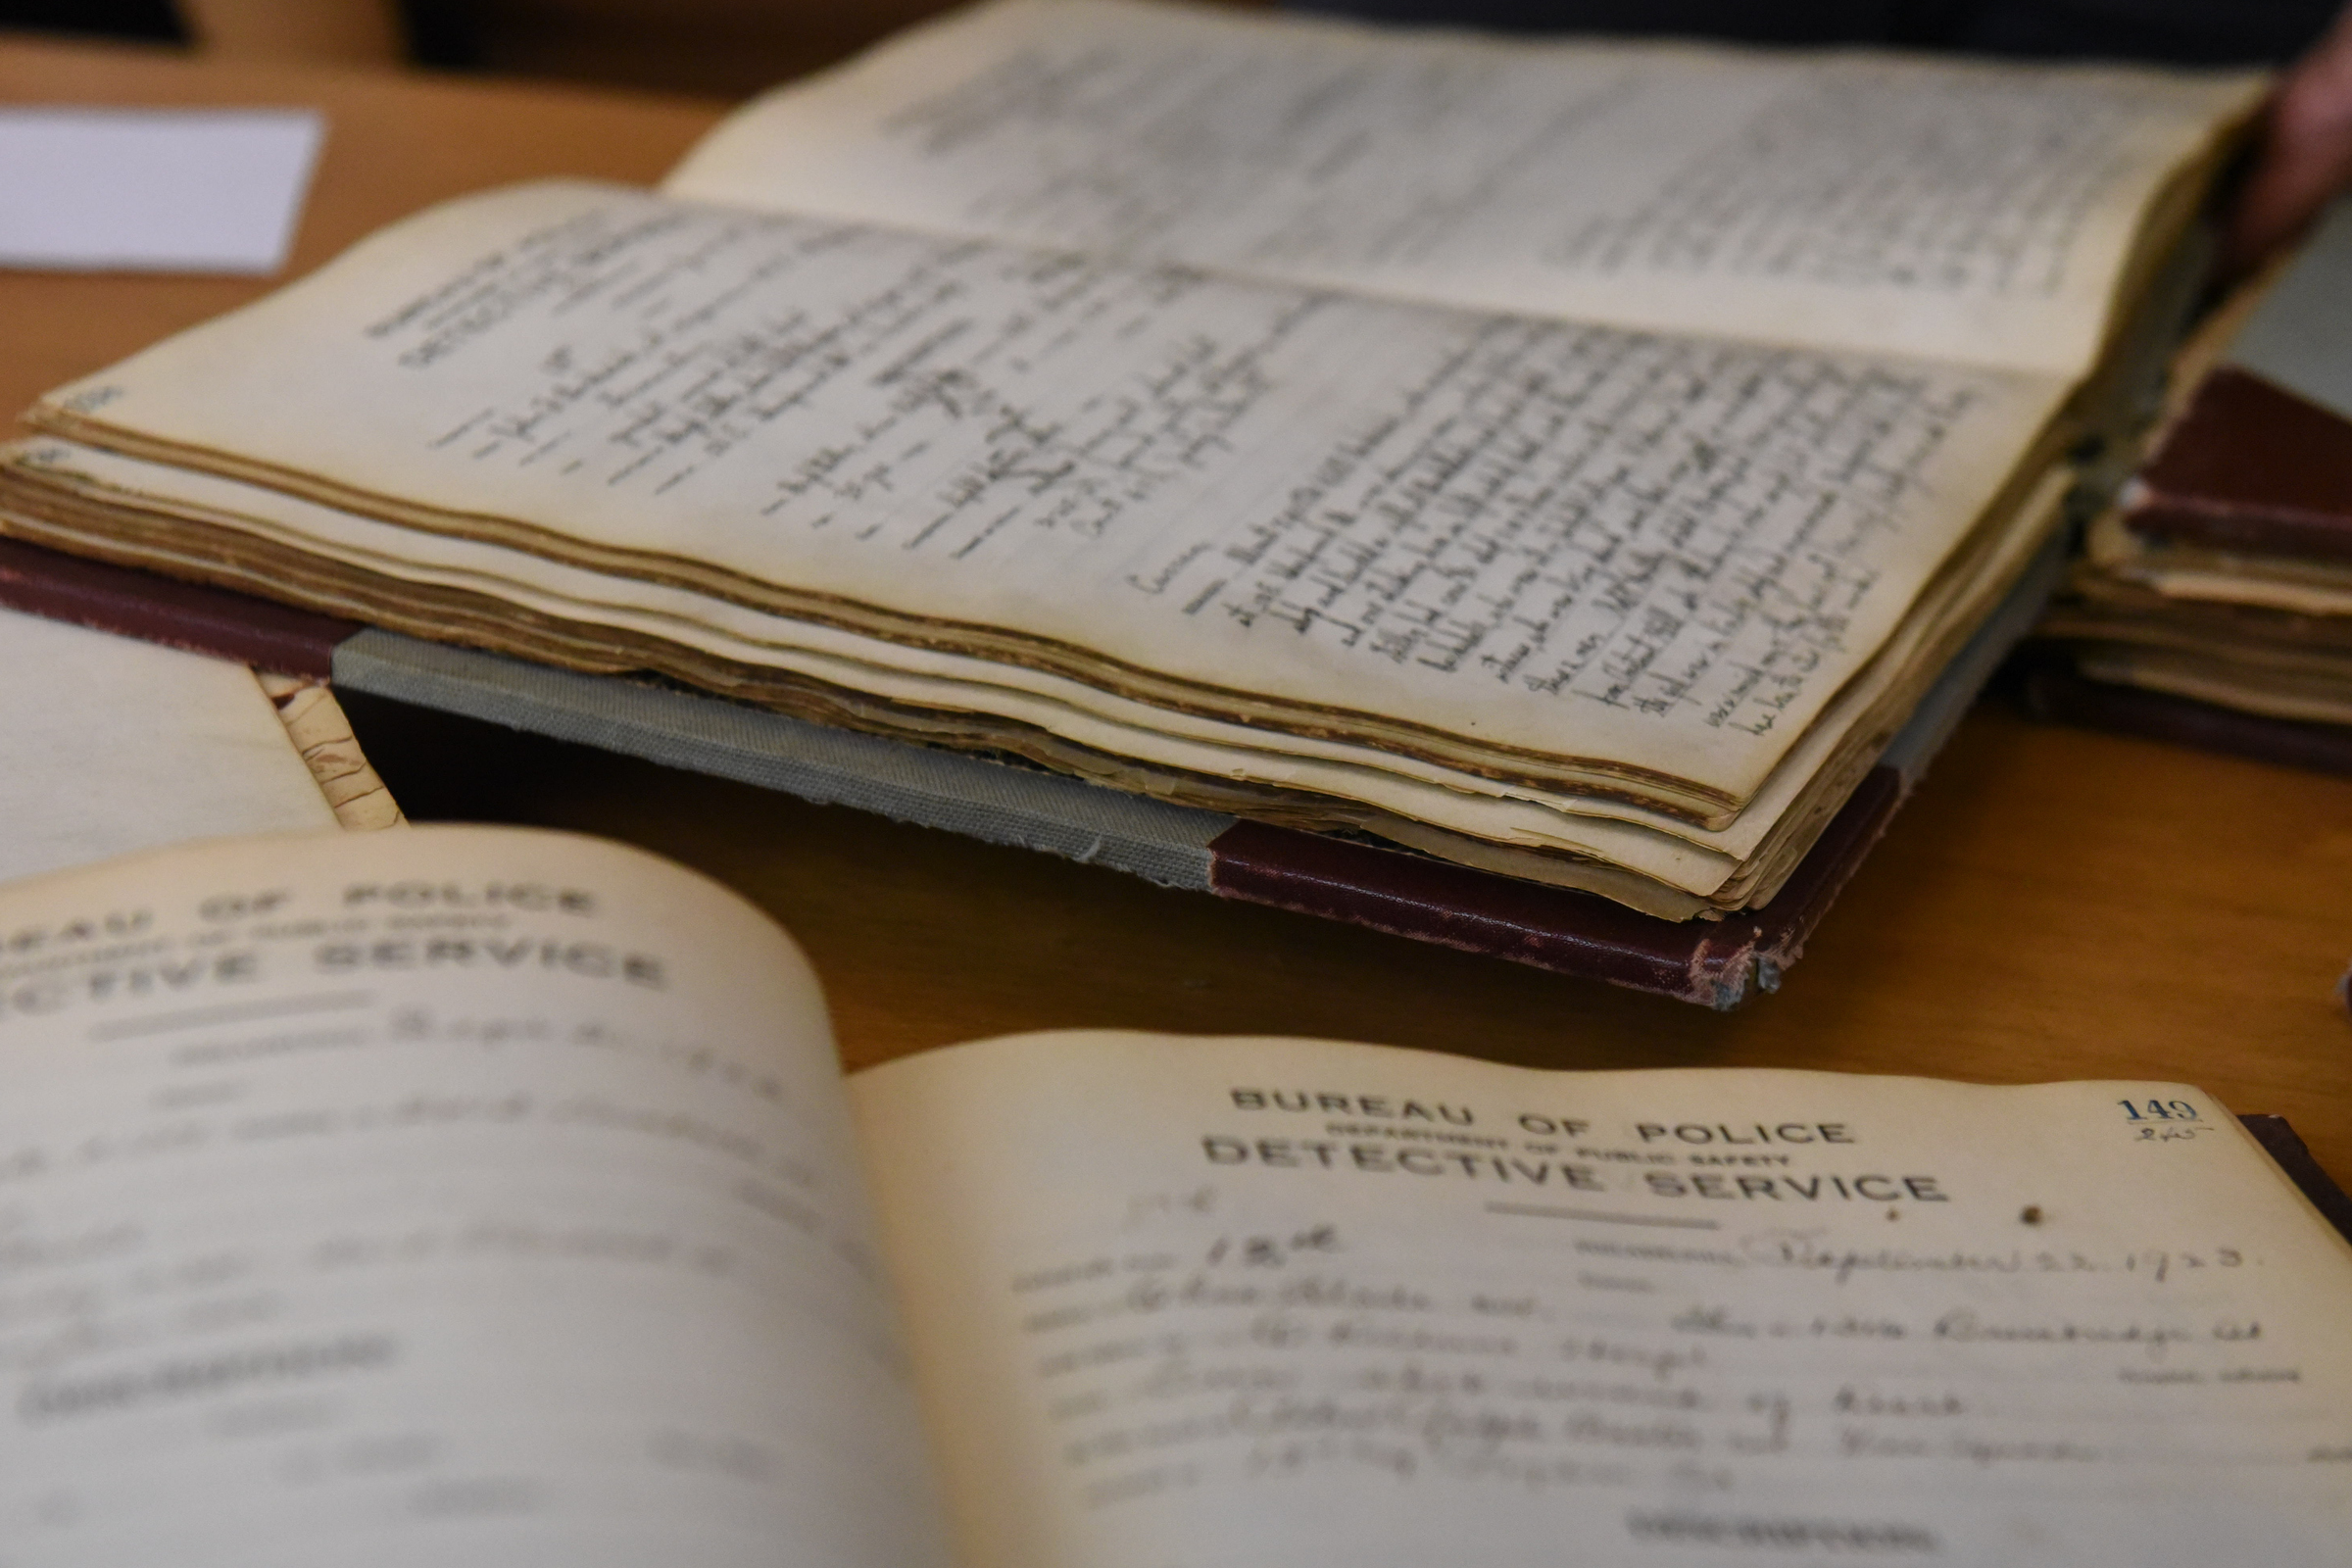 Historic homicide record books that date back to the early 1900s.